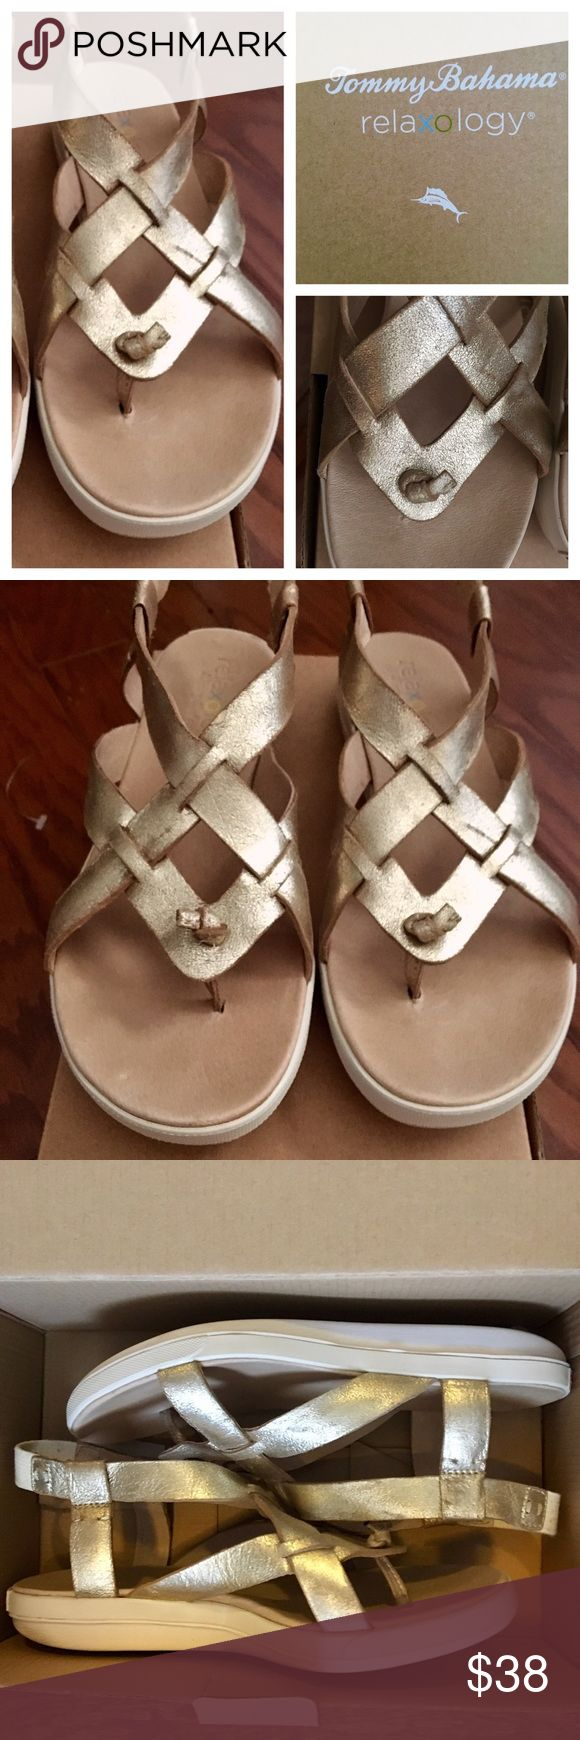 Tommy Bahama Reflexology Sandal Sz 8 Super comfortable and supportive. Gold sandals.  Made for waking.  Worn one time. Tommy Bahama Shoes Sandals